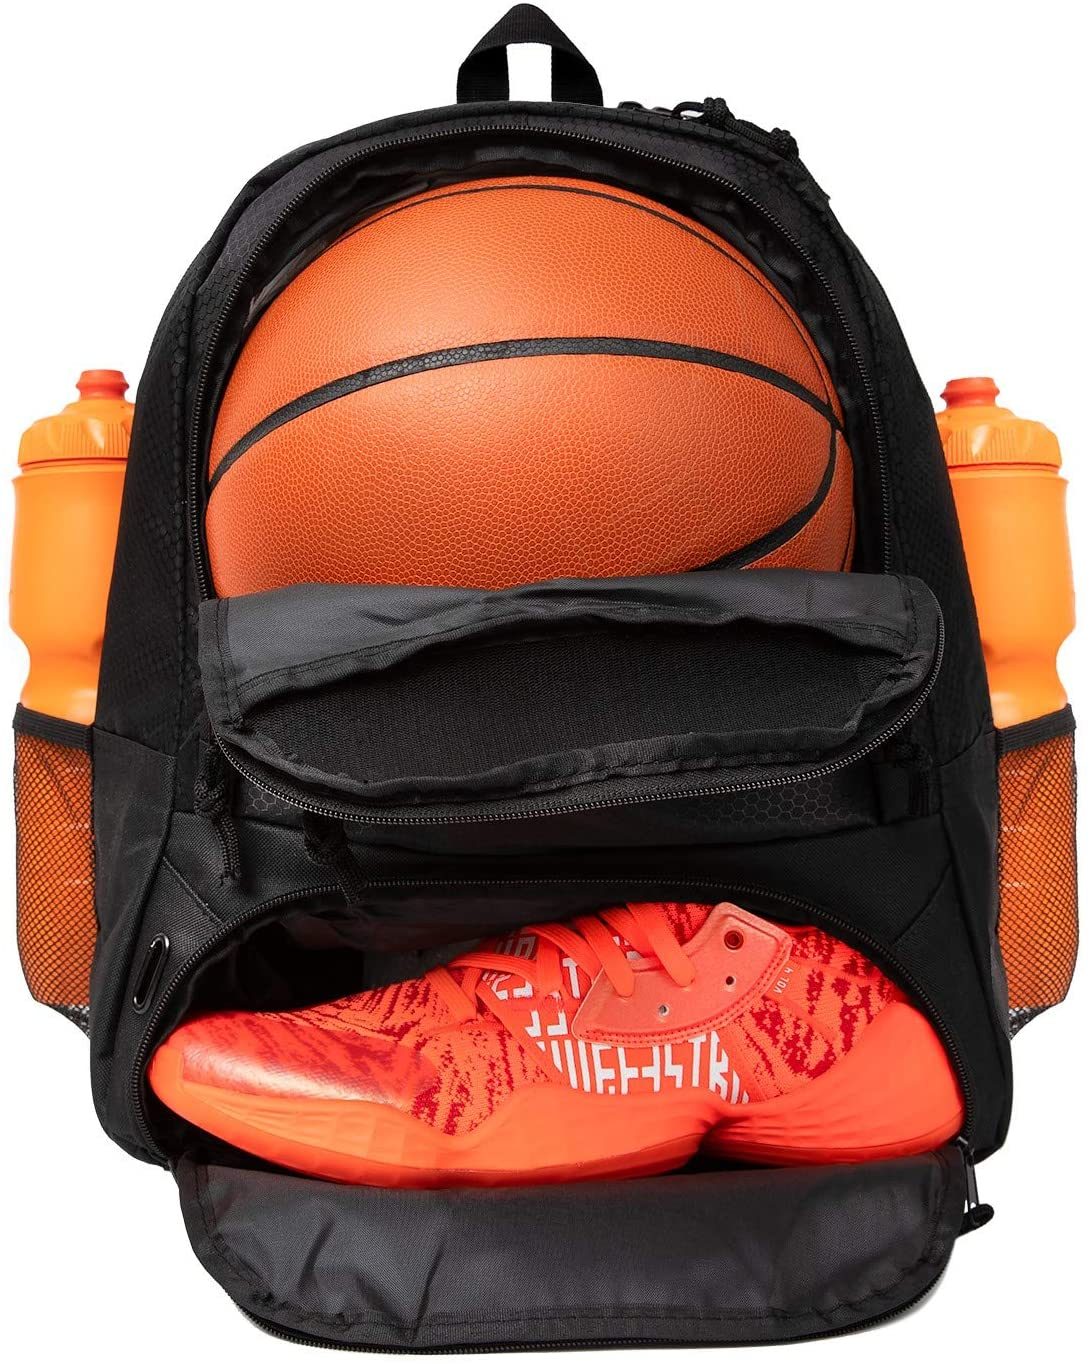 ERANT Basketball Backpack